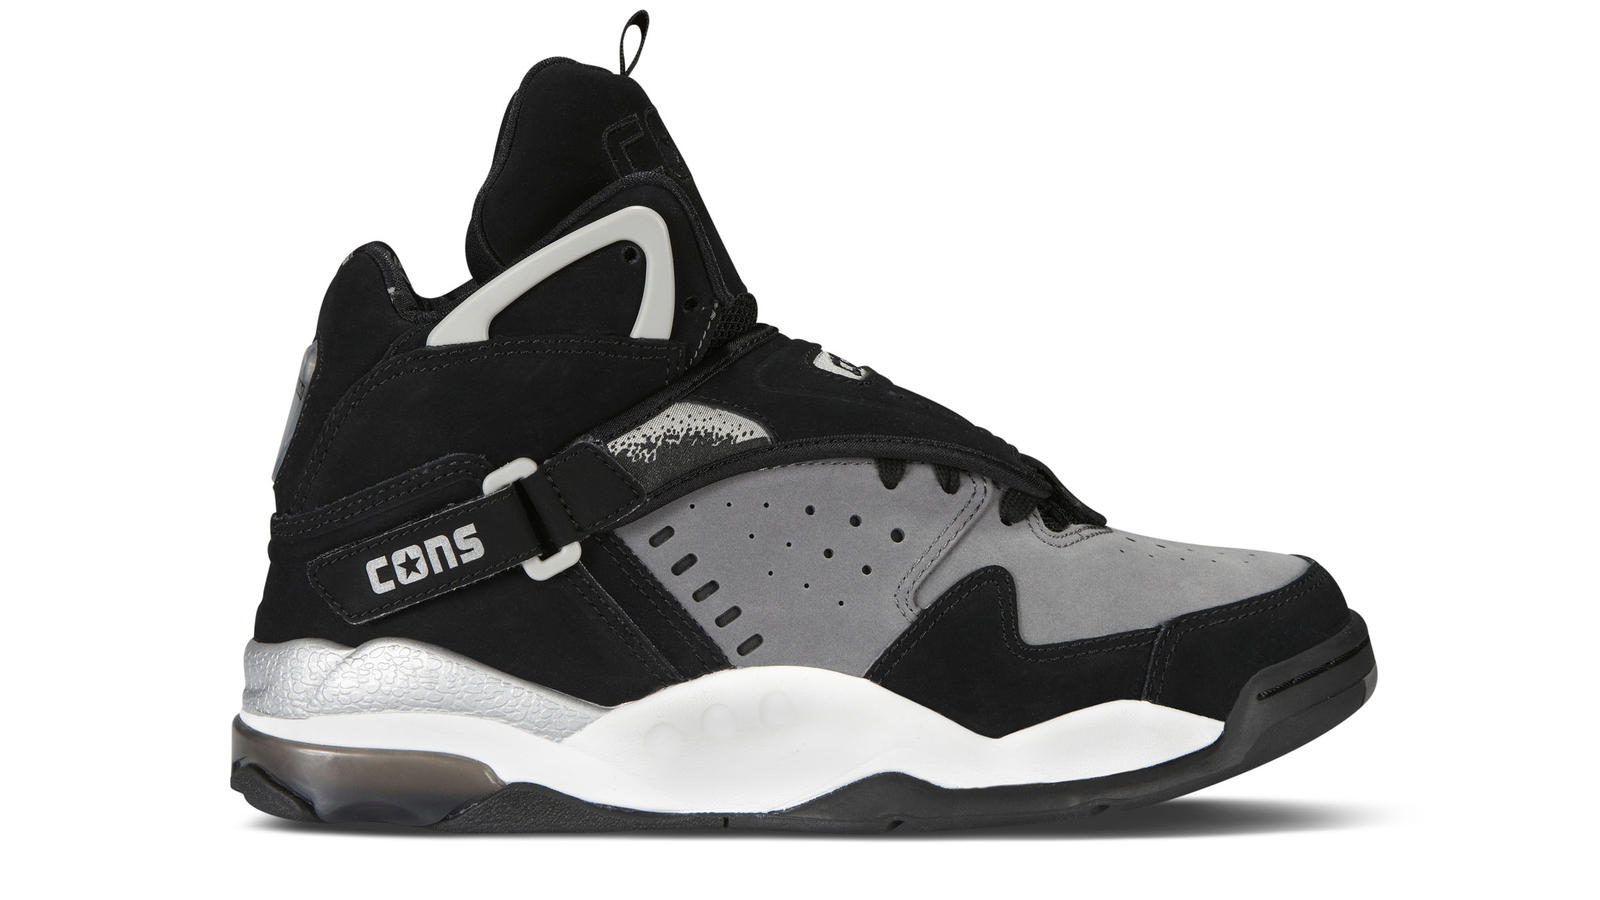 Cons Aerojam Gray Original